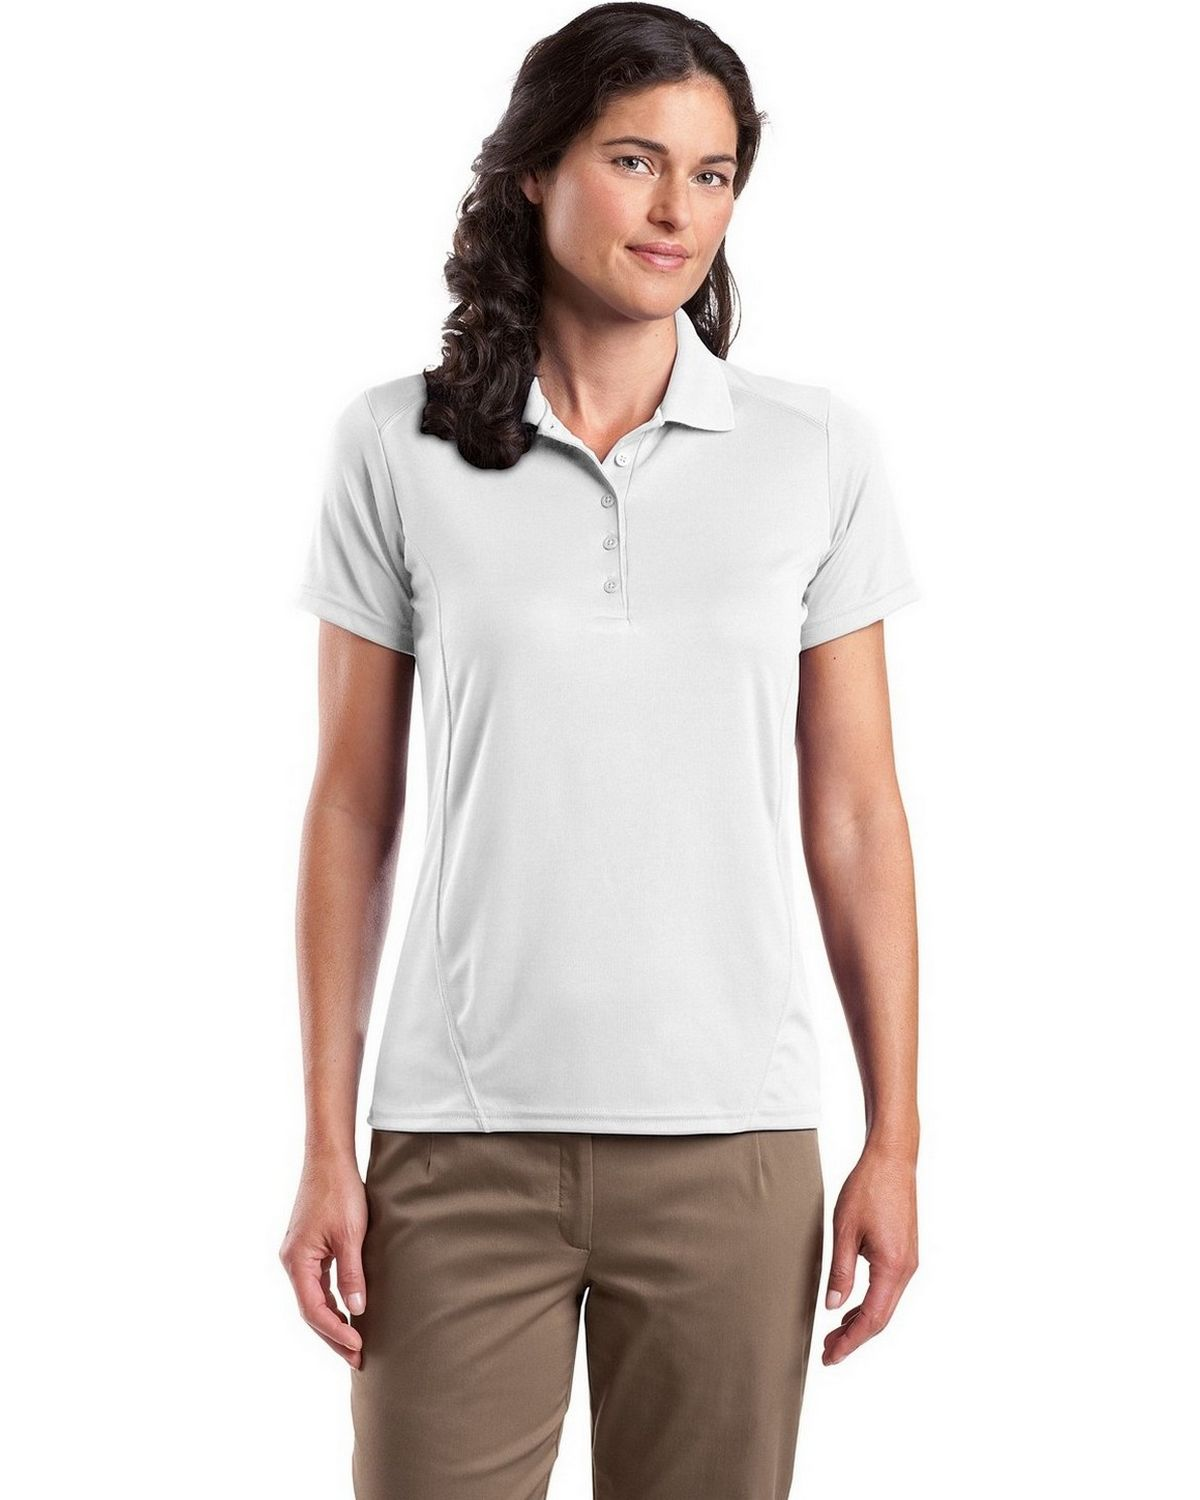 Sport Tek L475 Ladies Dry Zone Raglan Accent Polo Poshmark makes shopping fun, affordable & easy! sport tek l475 women s dry zone raglan accent polo